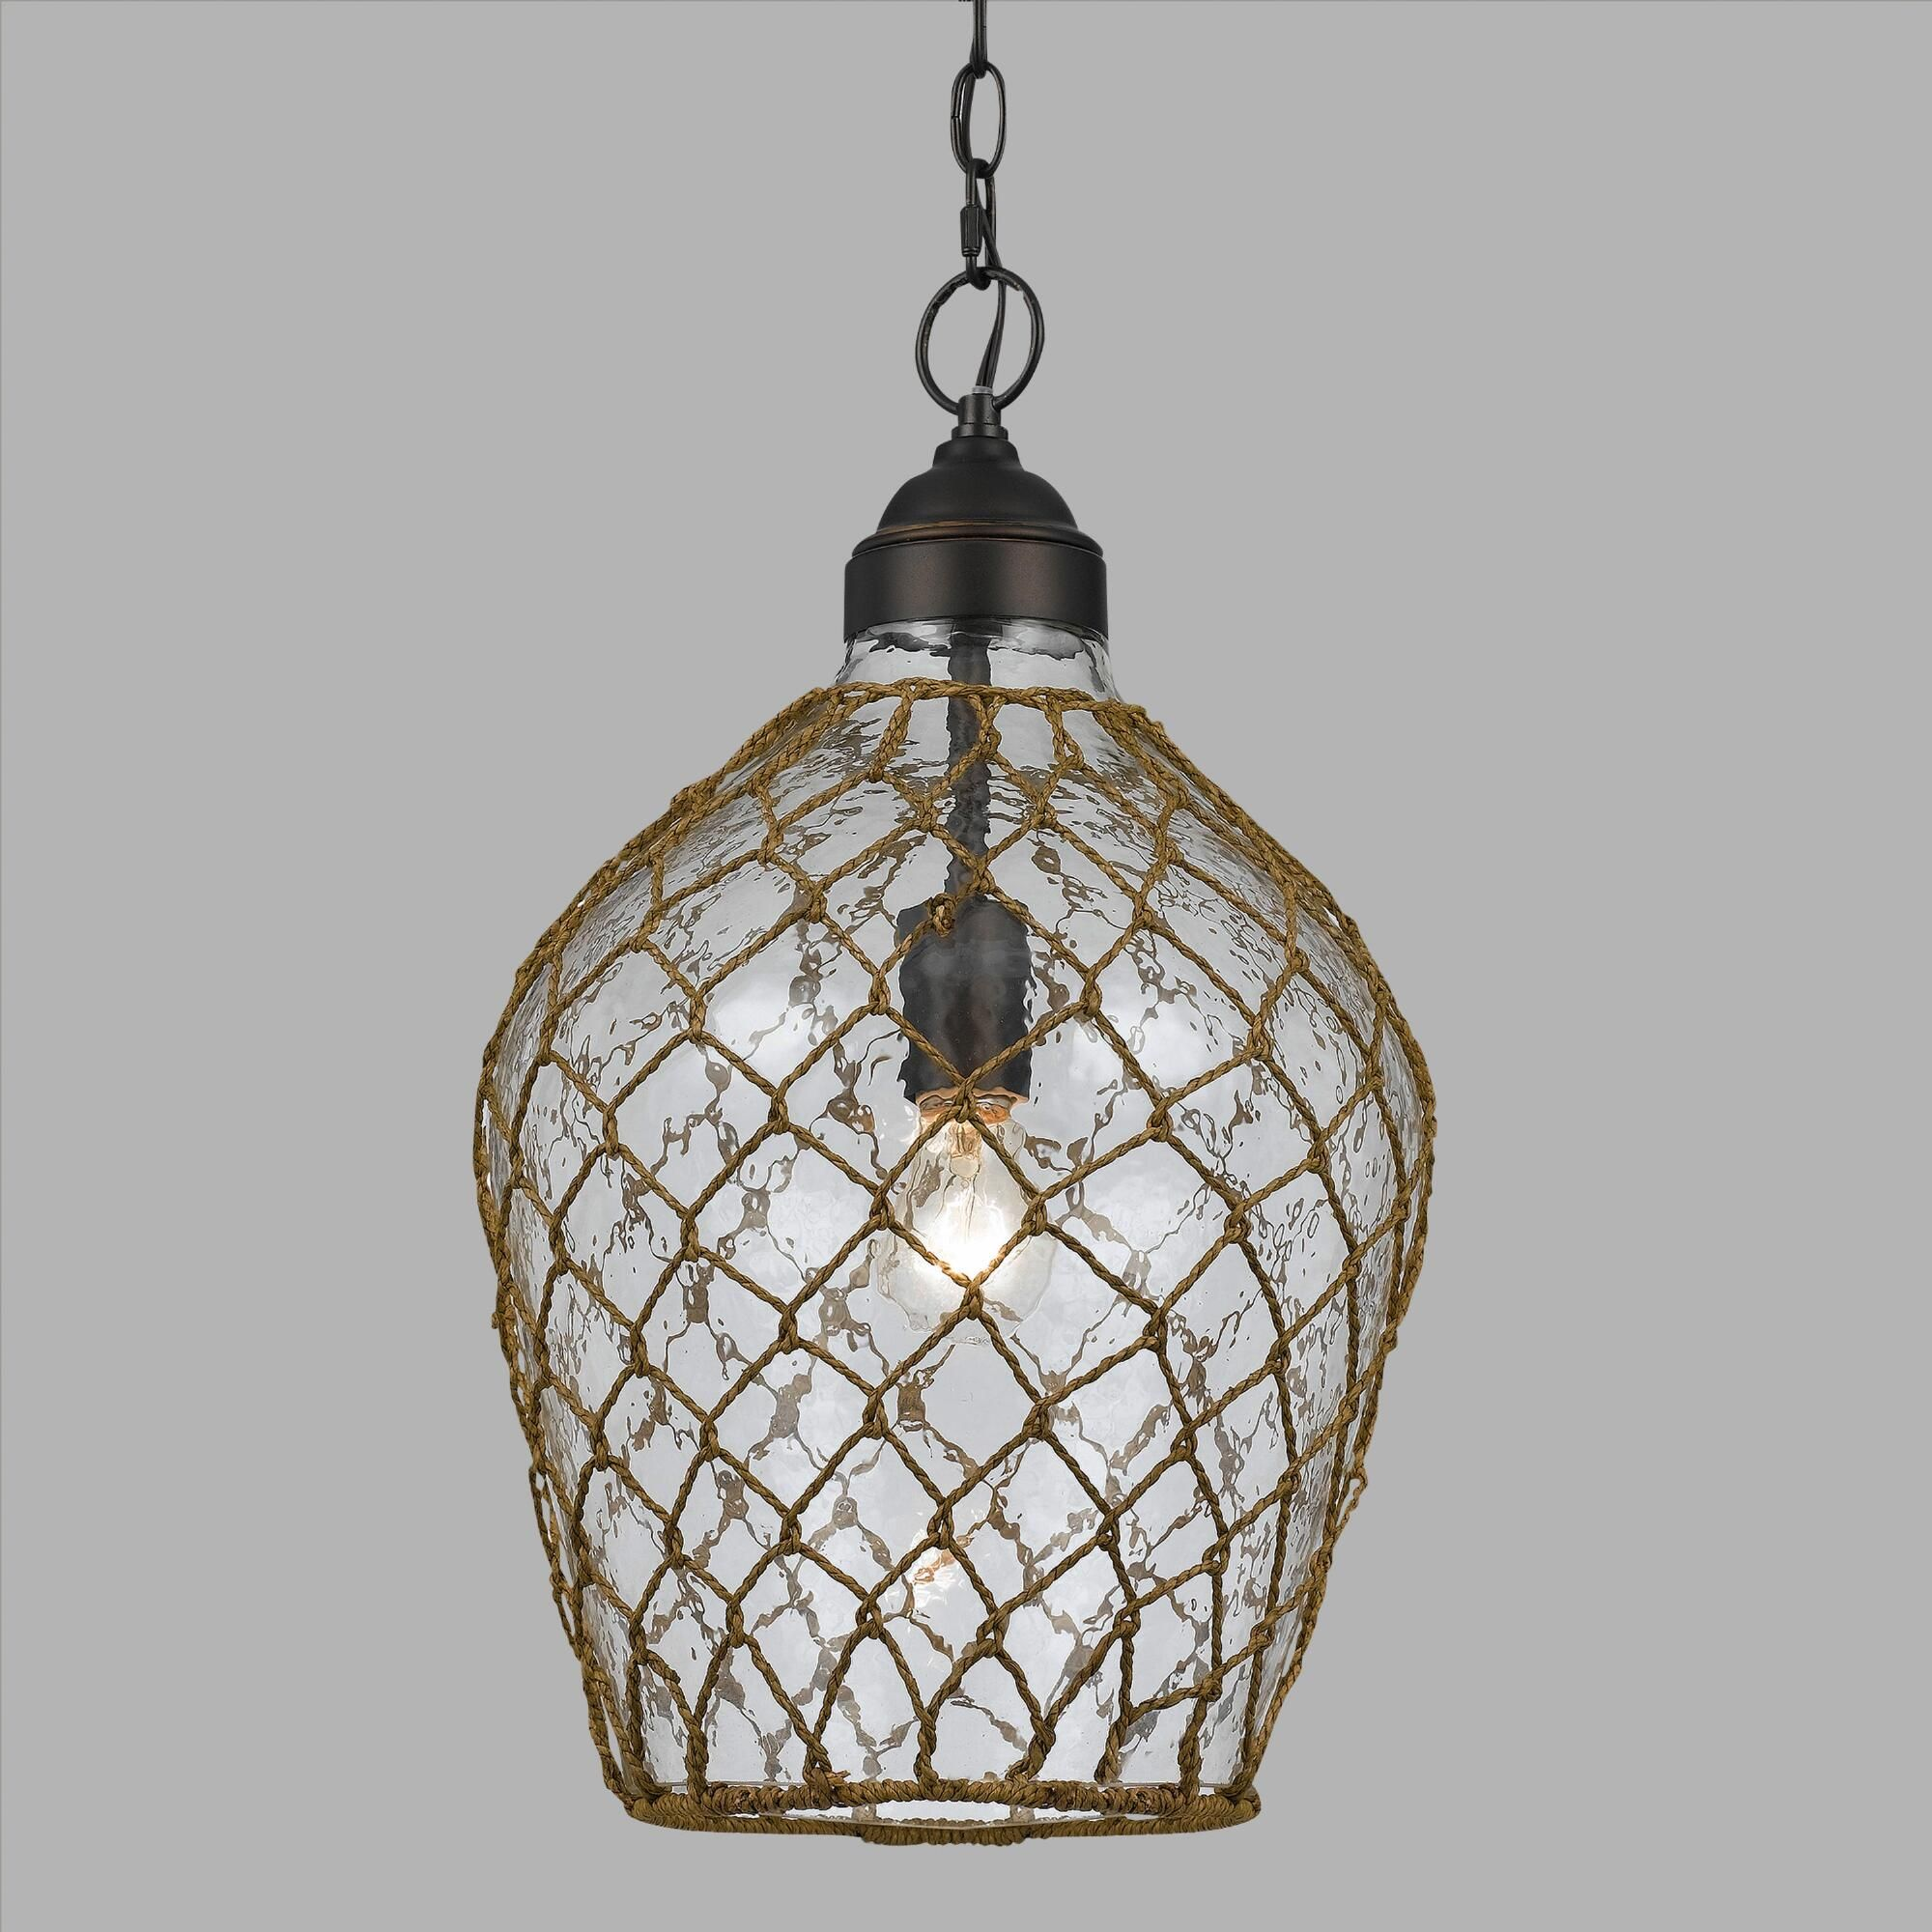 Featuring A Textured Bubble Gl Shade Artfully Wred In Woven